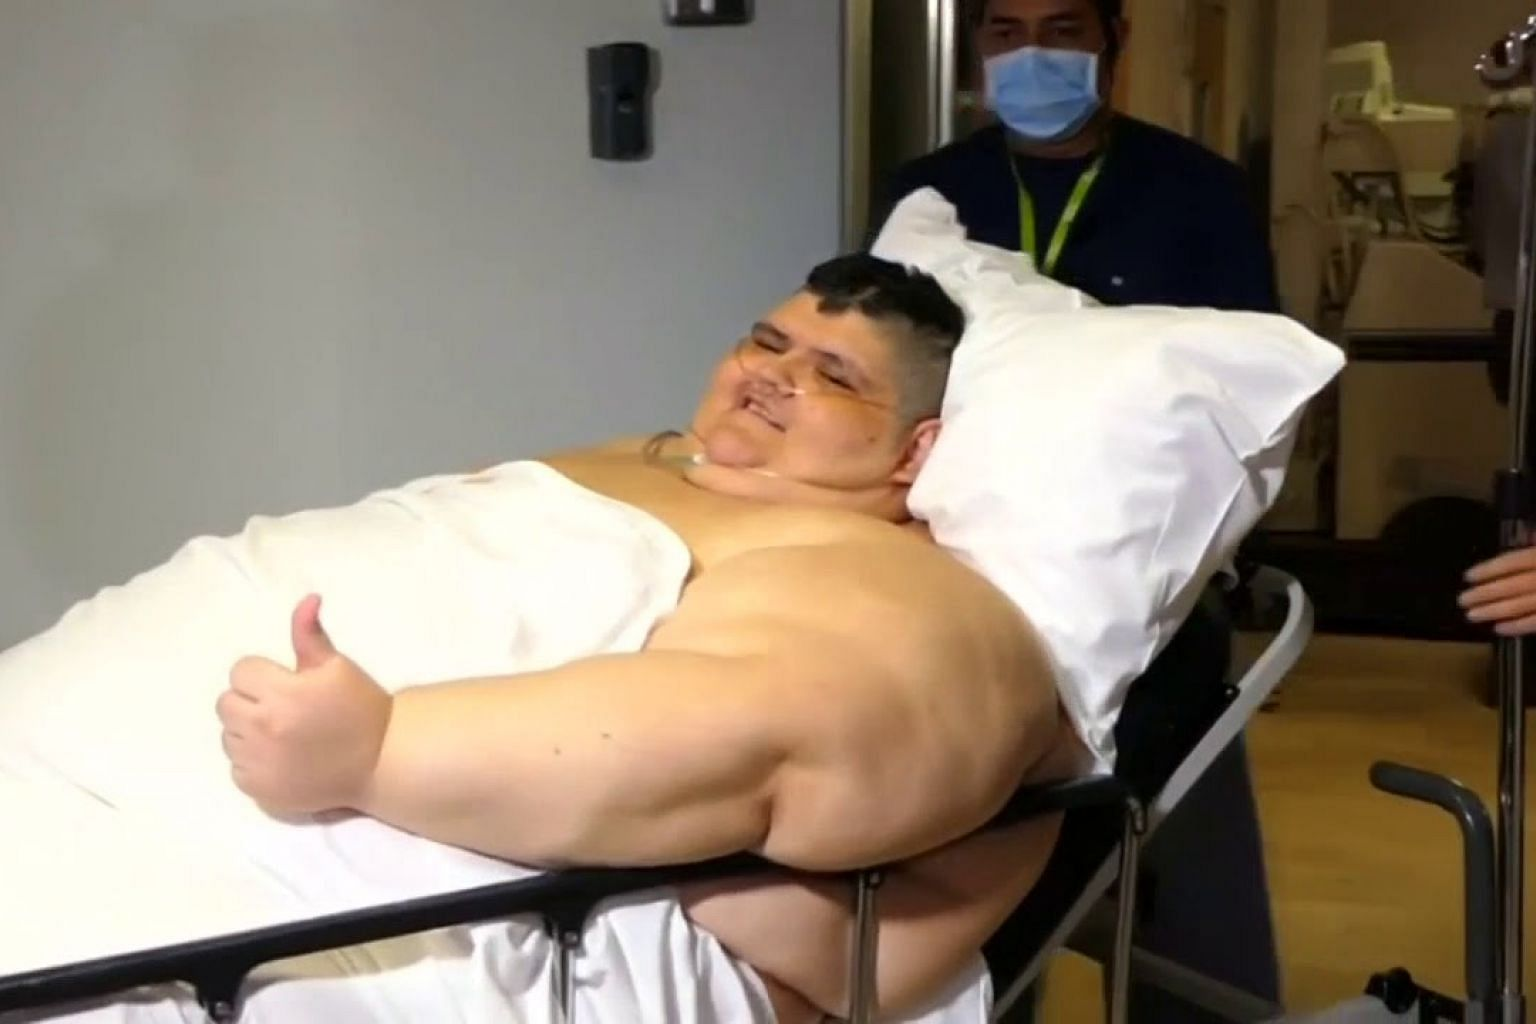 Mexico's 'heaviest man' has surgery to halve his weight